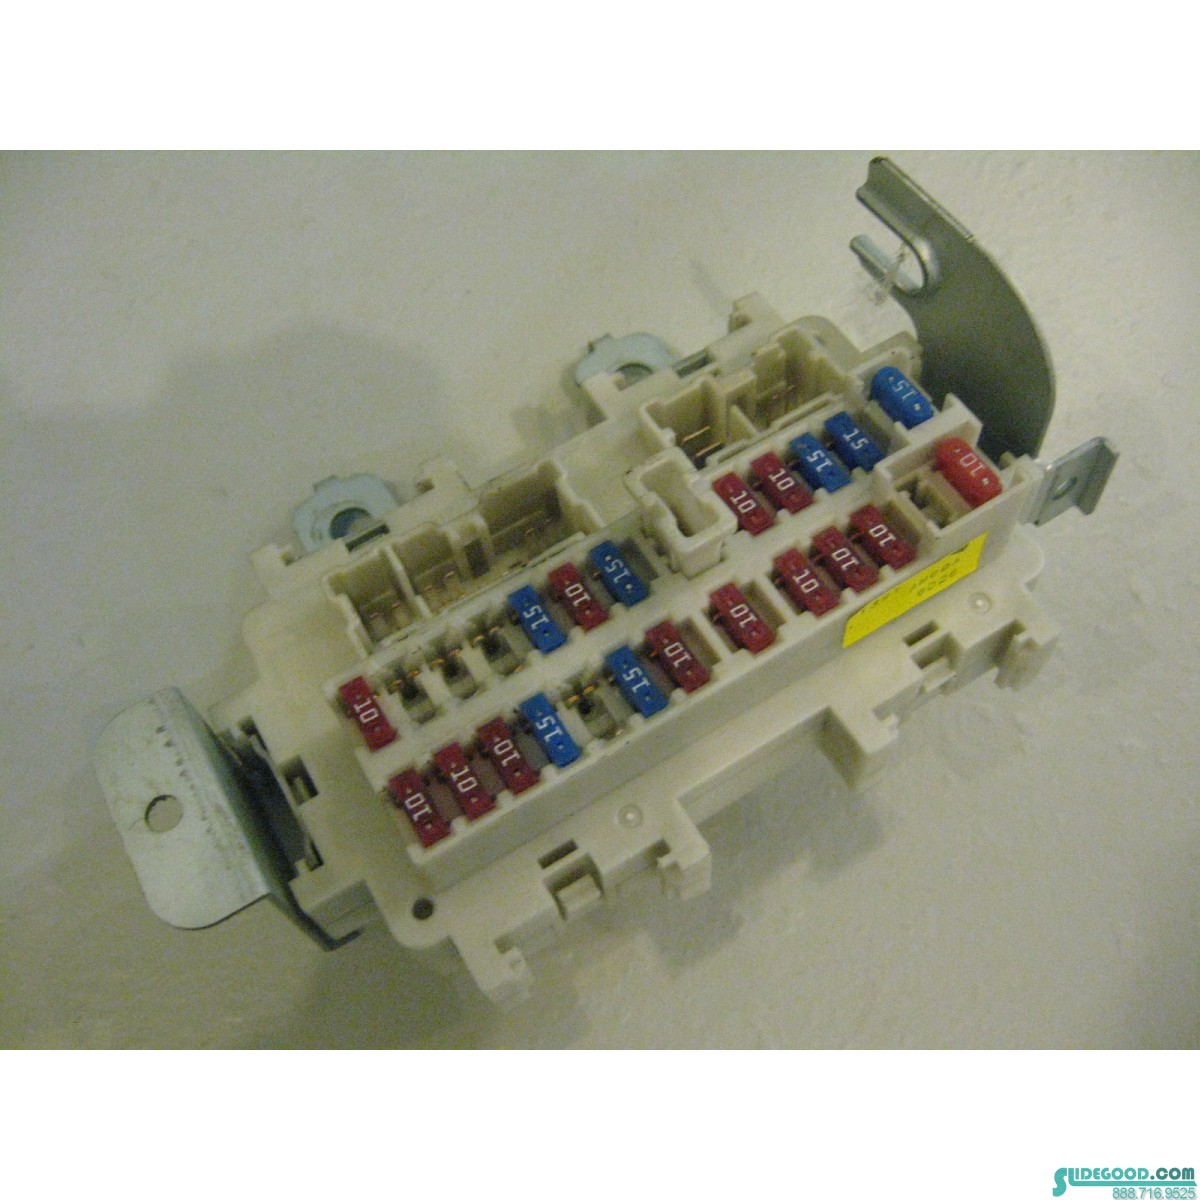 06 350z Fuse Box Wiring Library Harley Davidson Harness Diagram Wp105 Nissan Am60a R3177